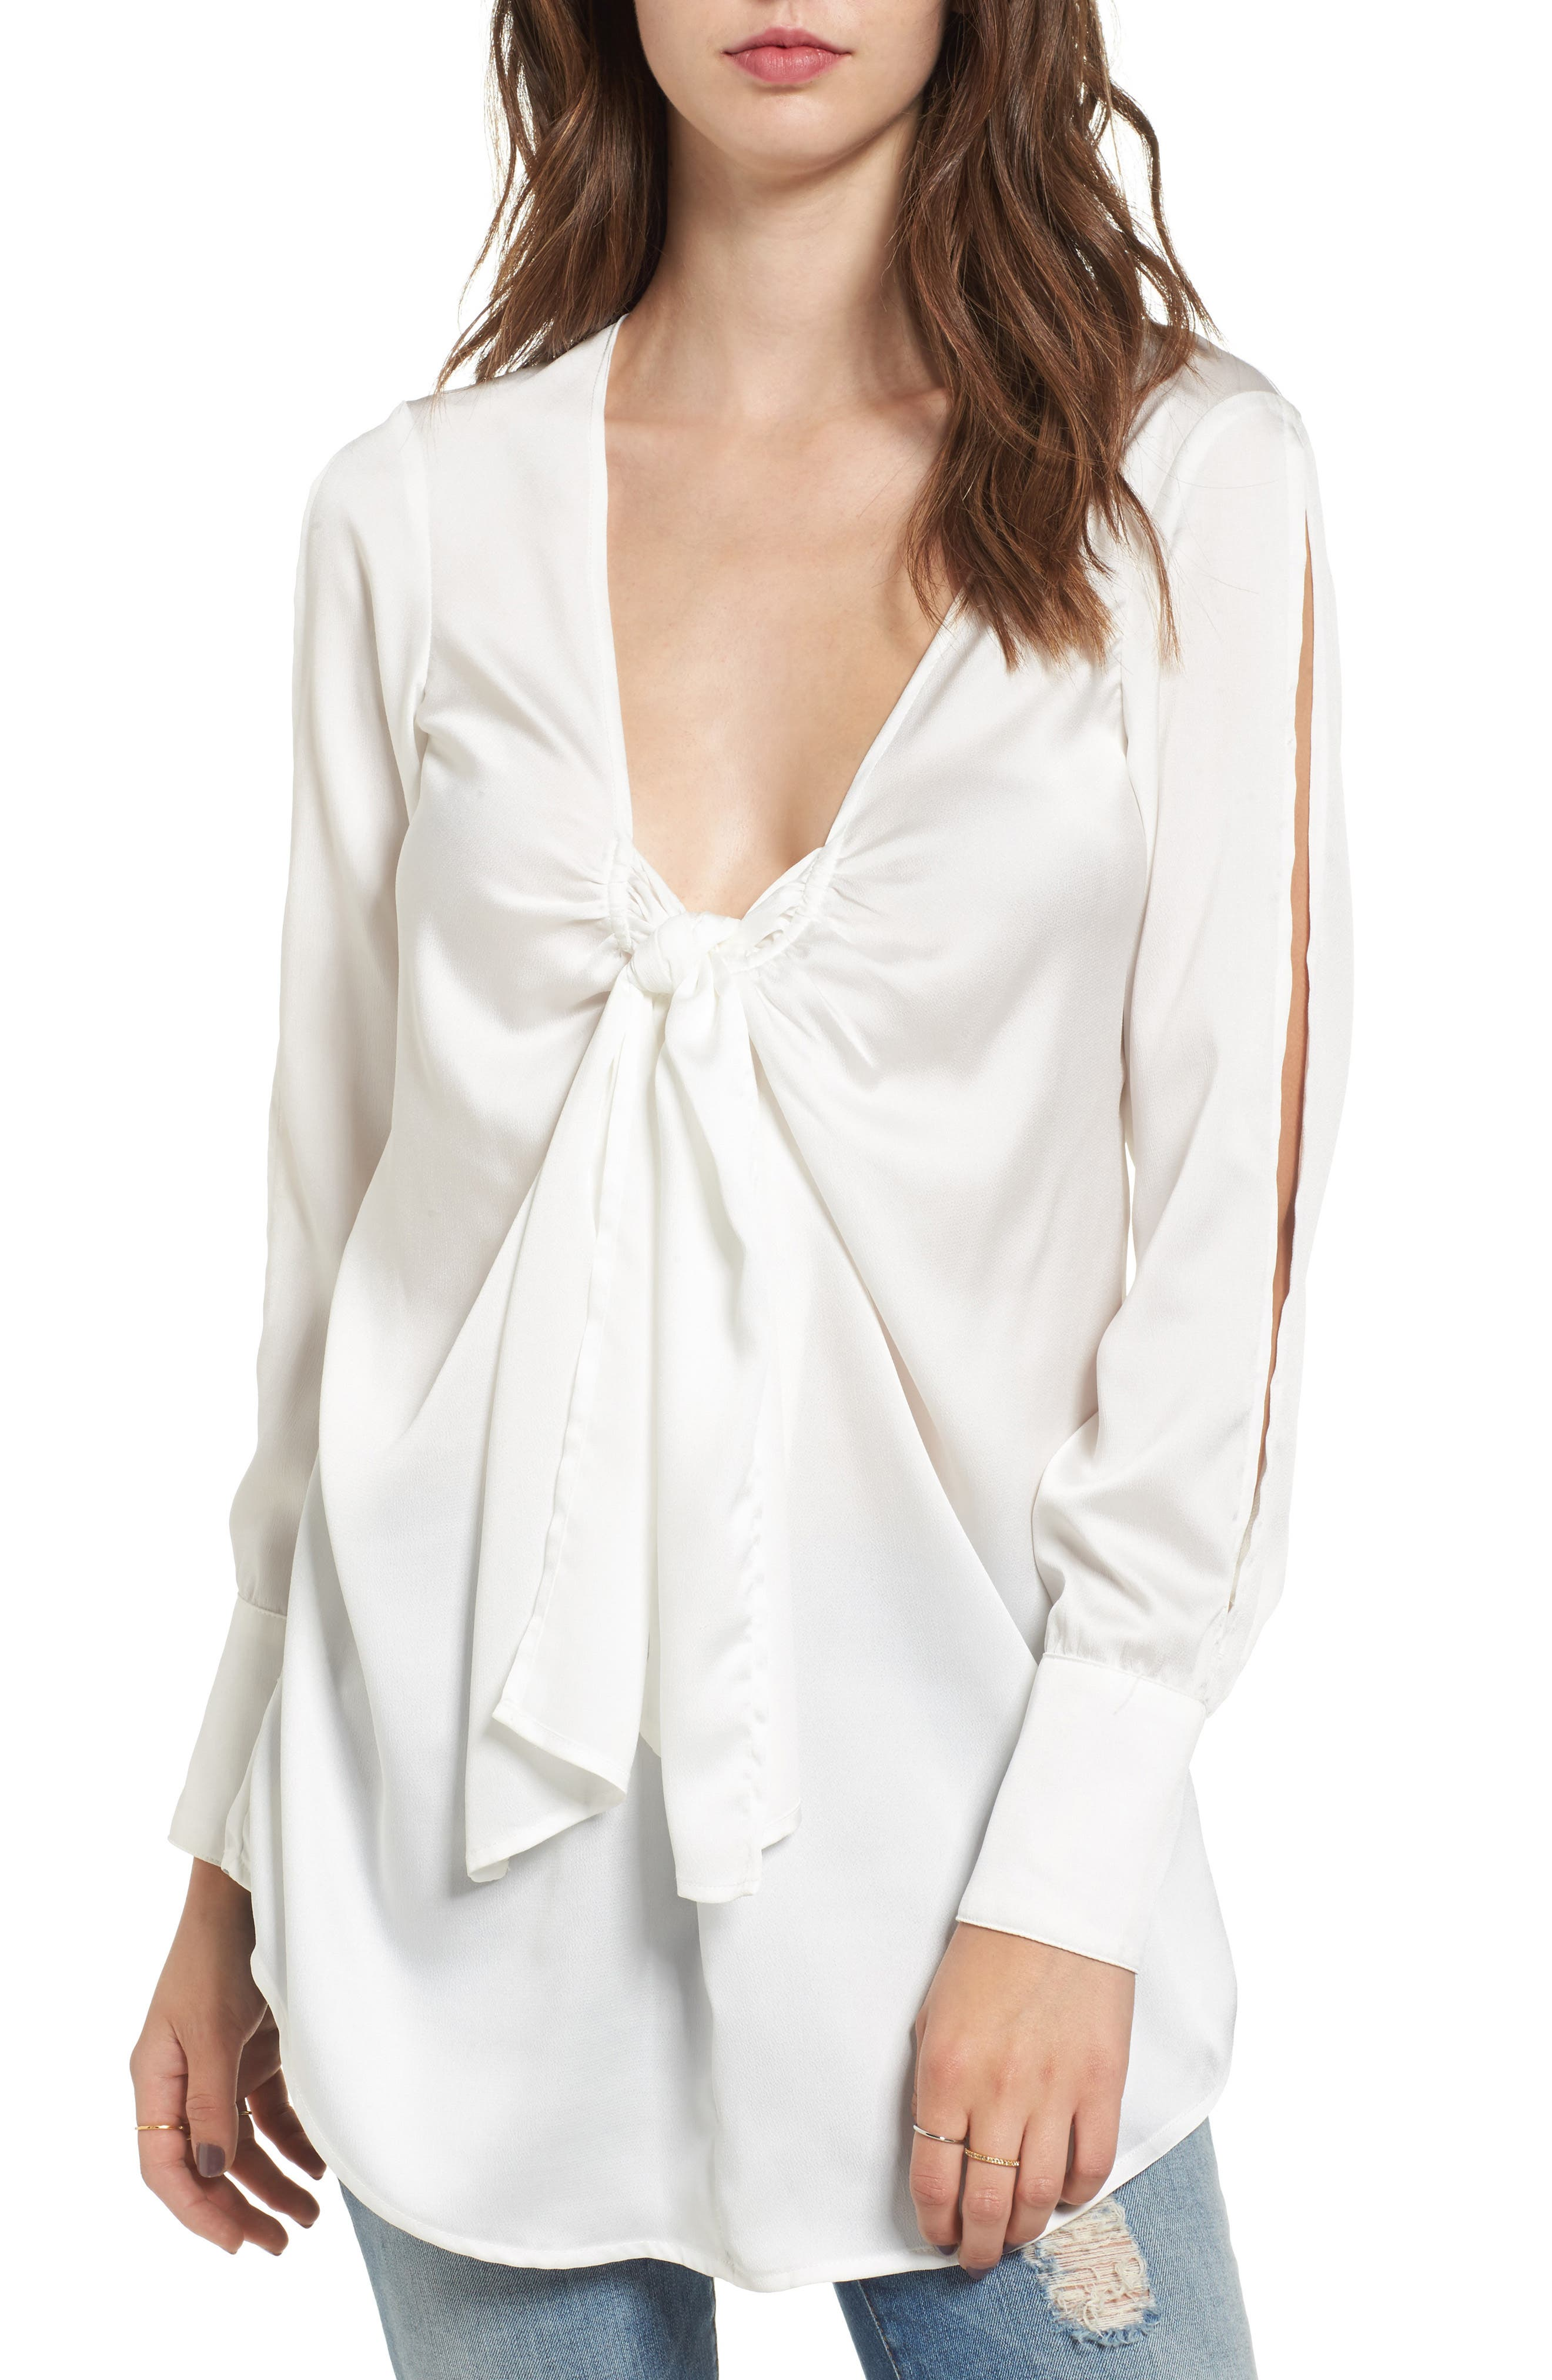 Main Image - The Fifth Label Knotted Hammered Satin Blouse